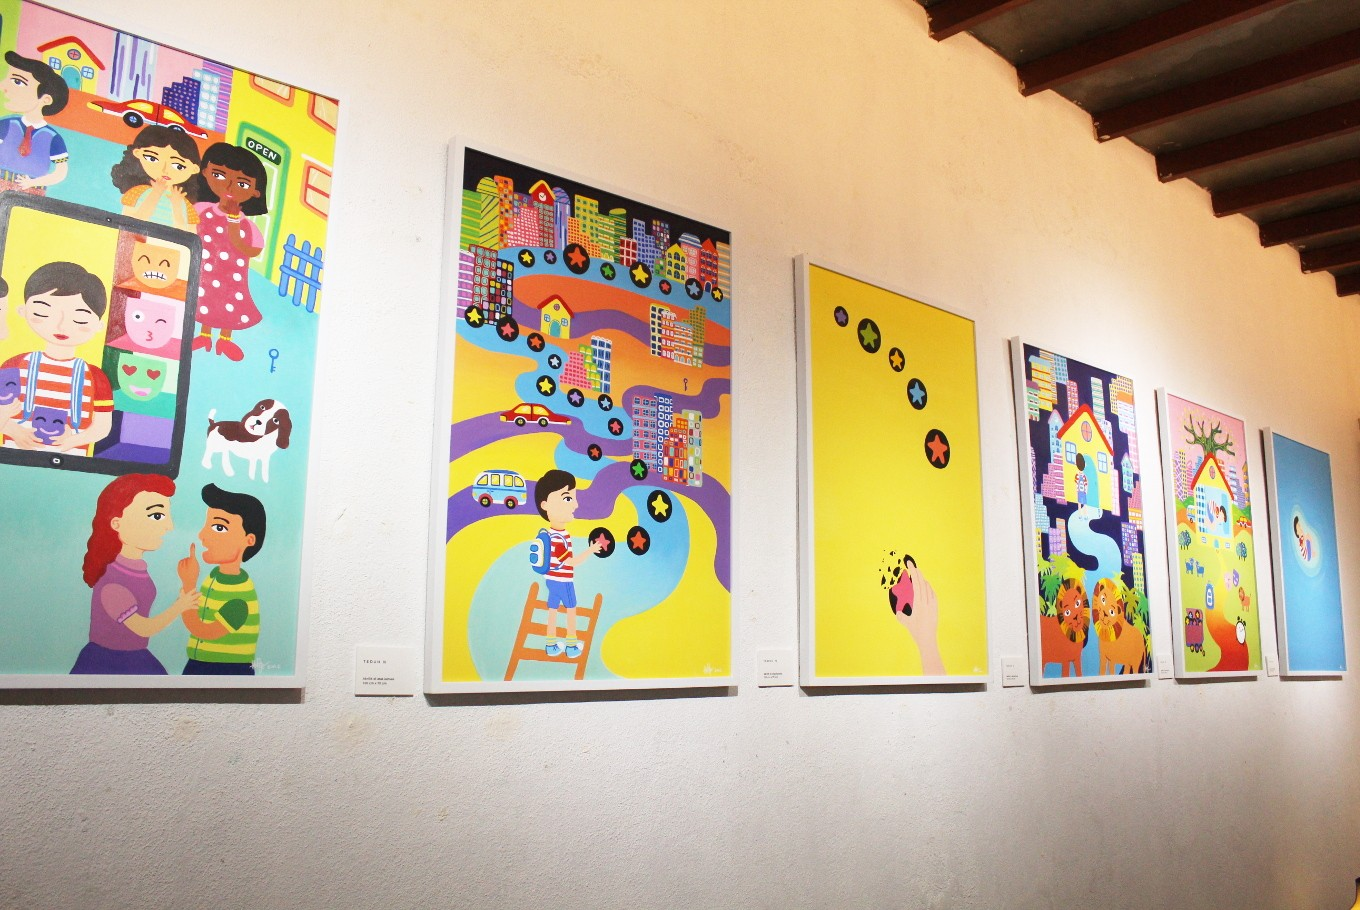 Jakarta exhibition delves into finding life's purpose